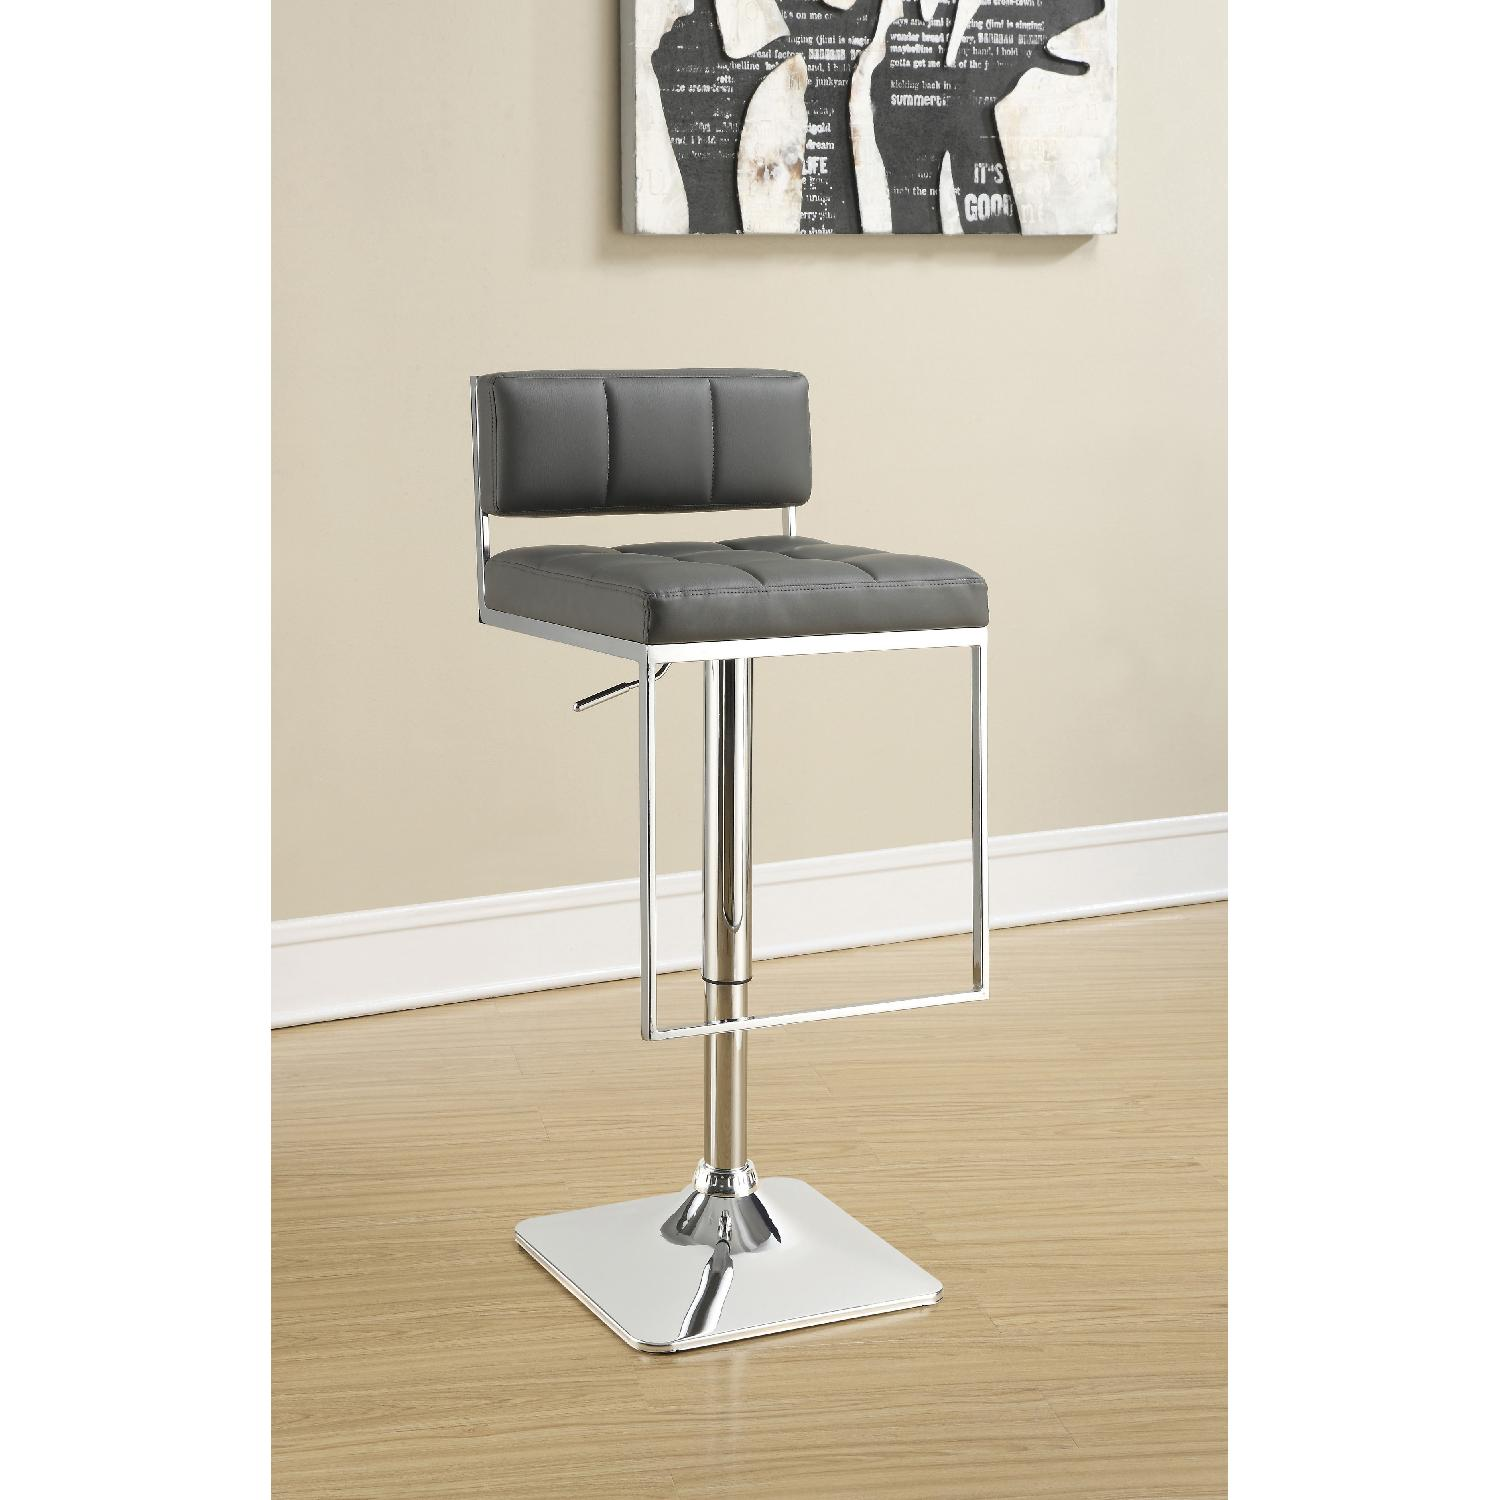 Excellent Modern Style Barstool W Tufted Cushions In Grey Faux Caraccident5 Cool Chair Designs And Ideas Caraccident5Info